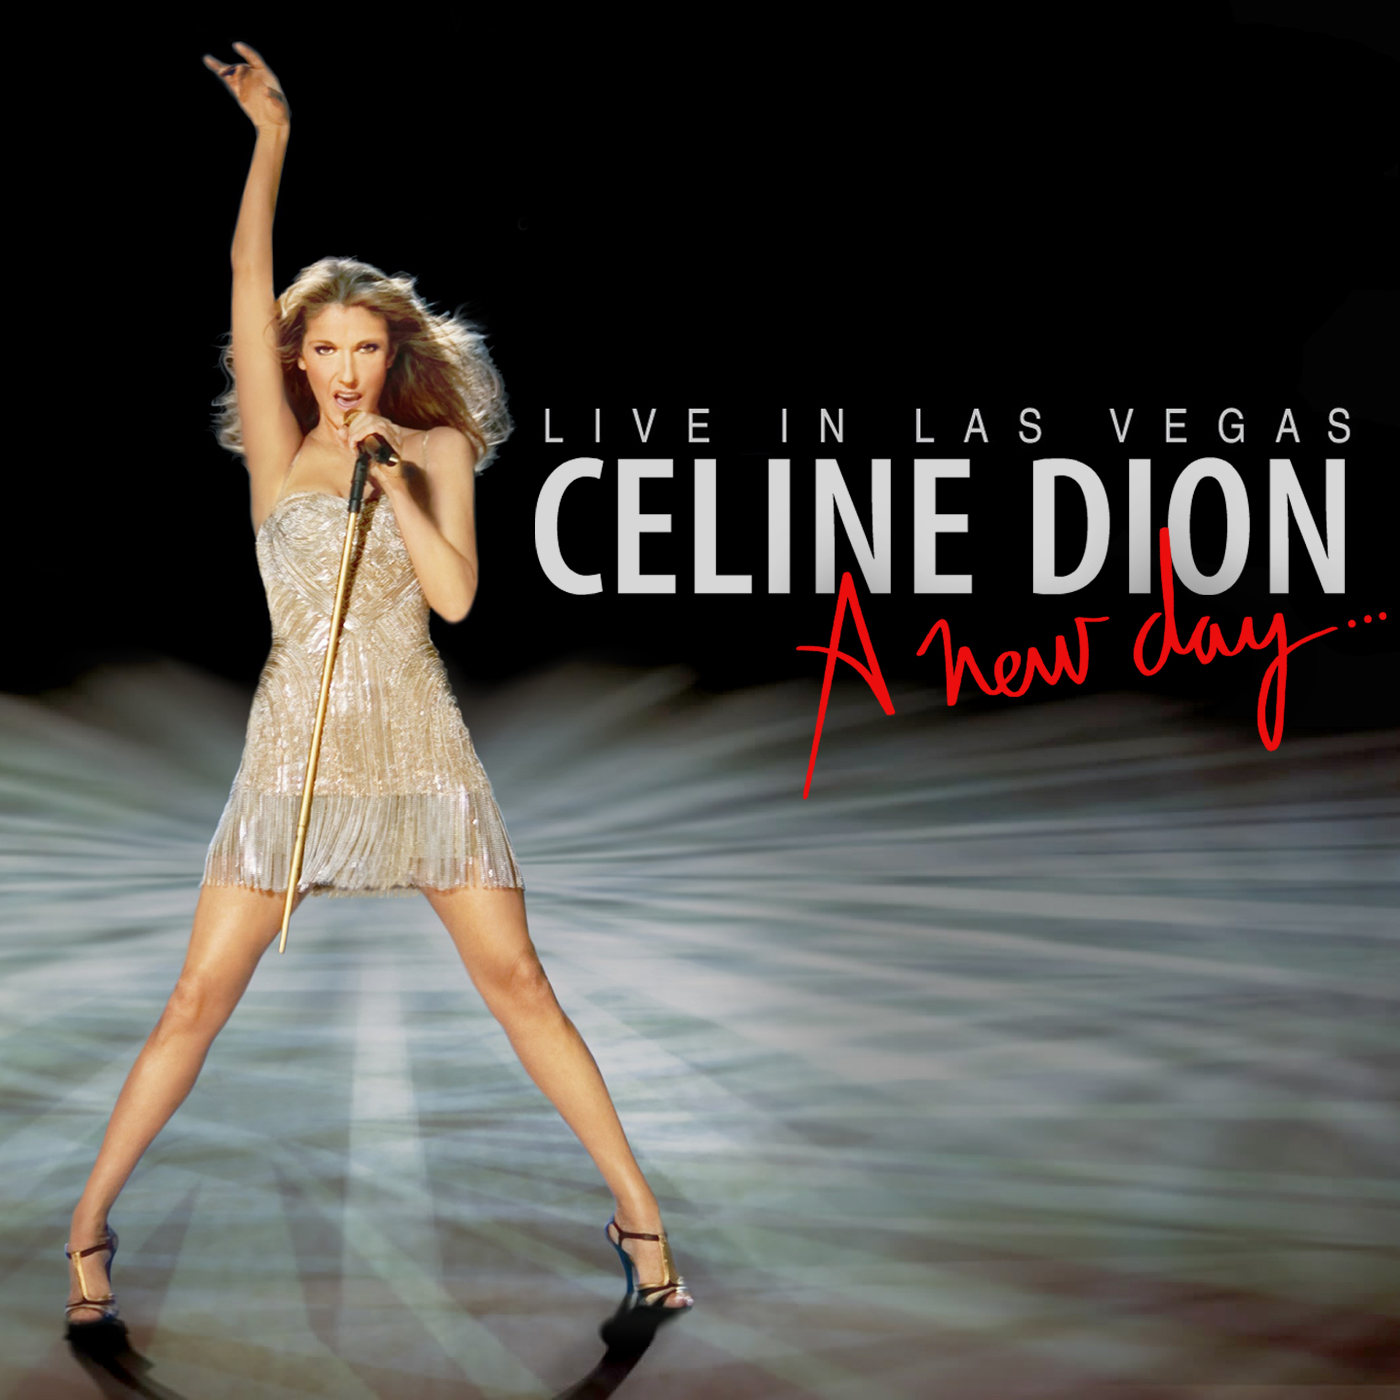 f2fbd78a025 A New Day.. Live in Las Vegas - Celine Dion Saw this show and it was ...